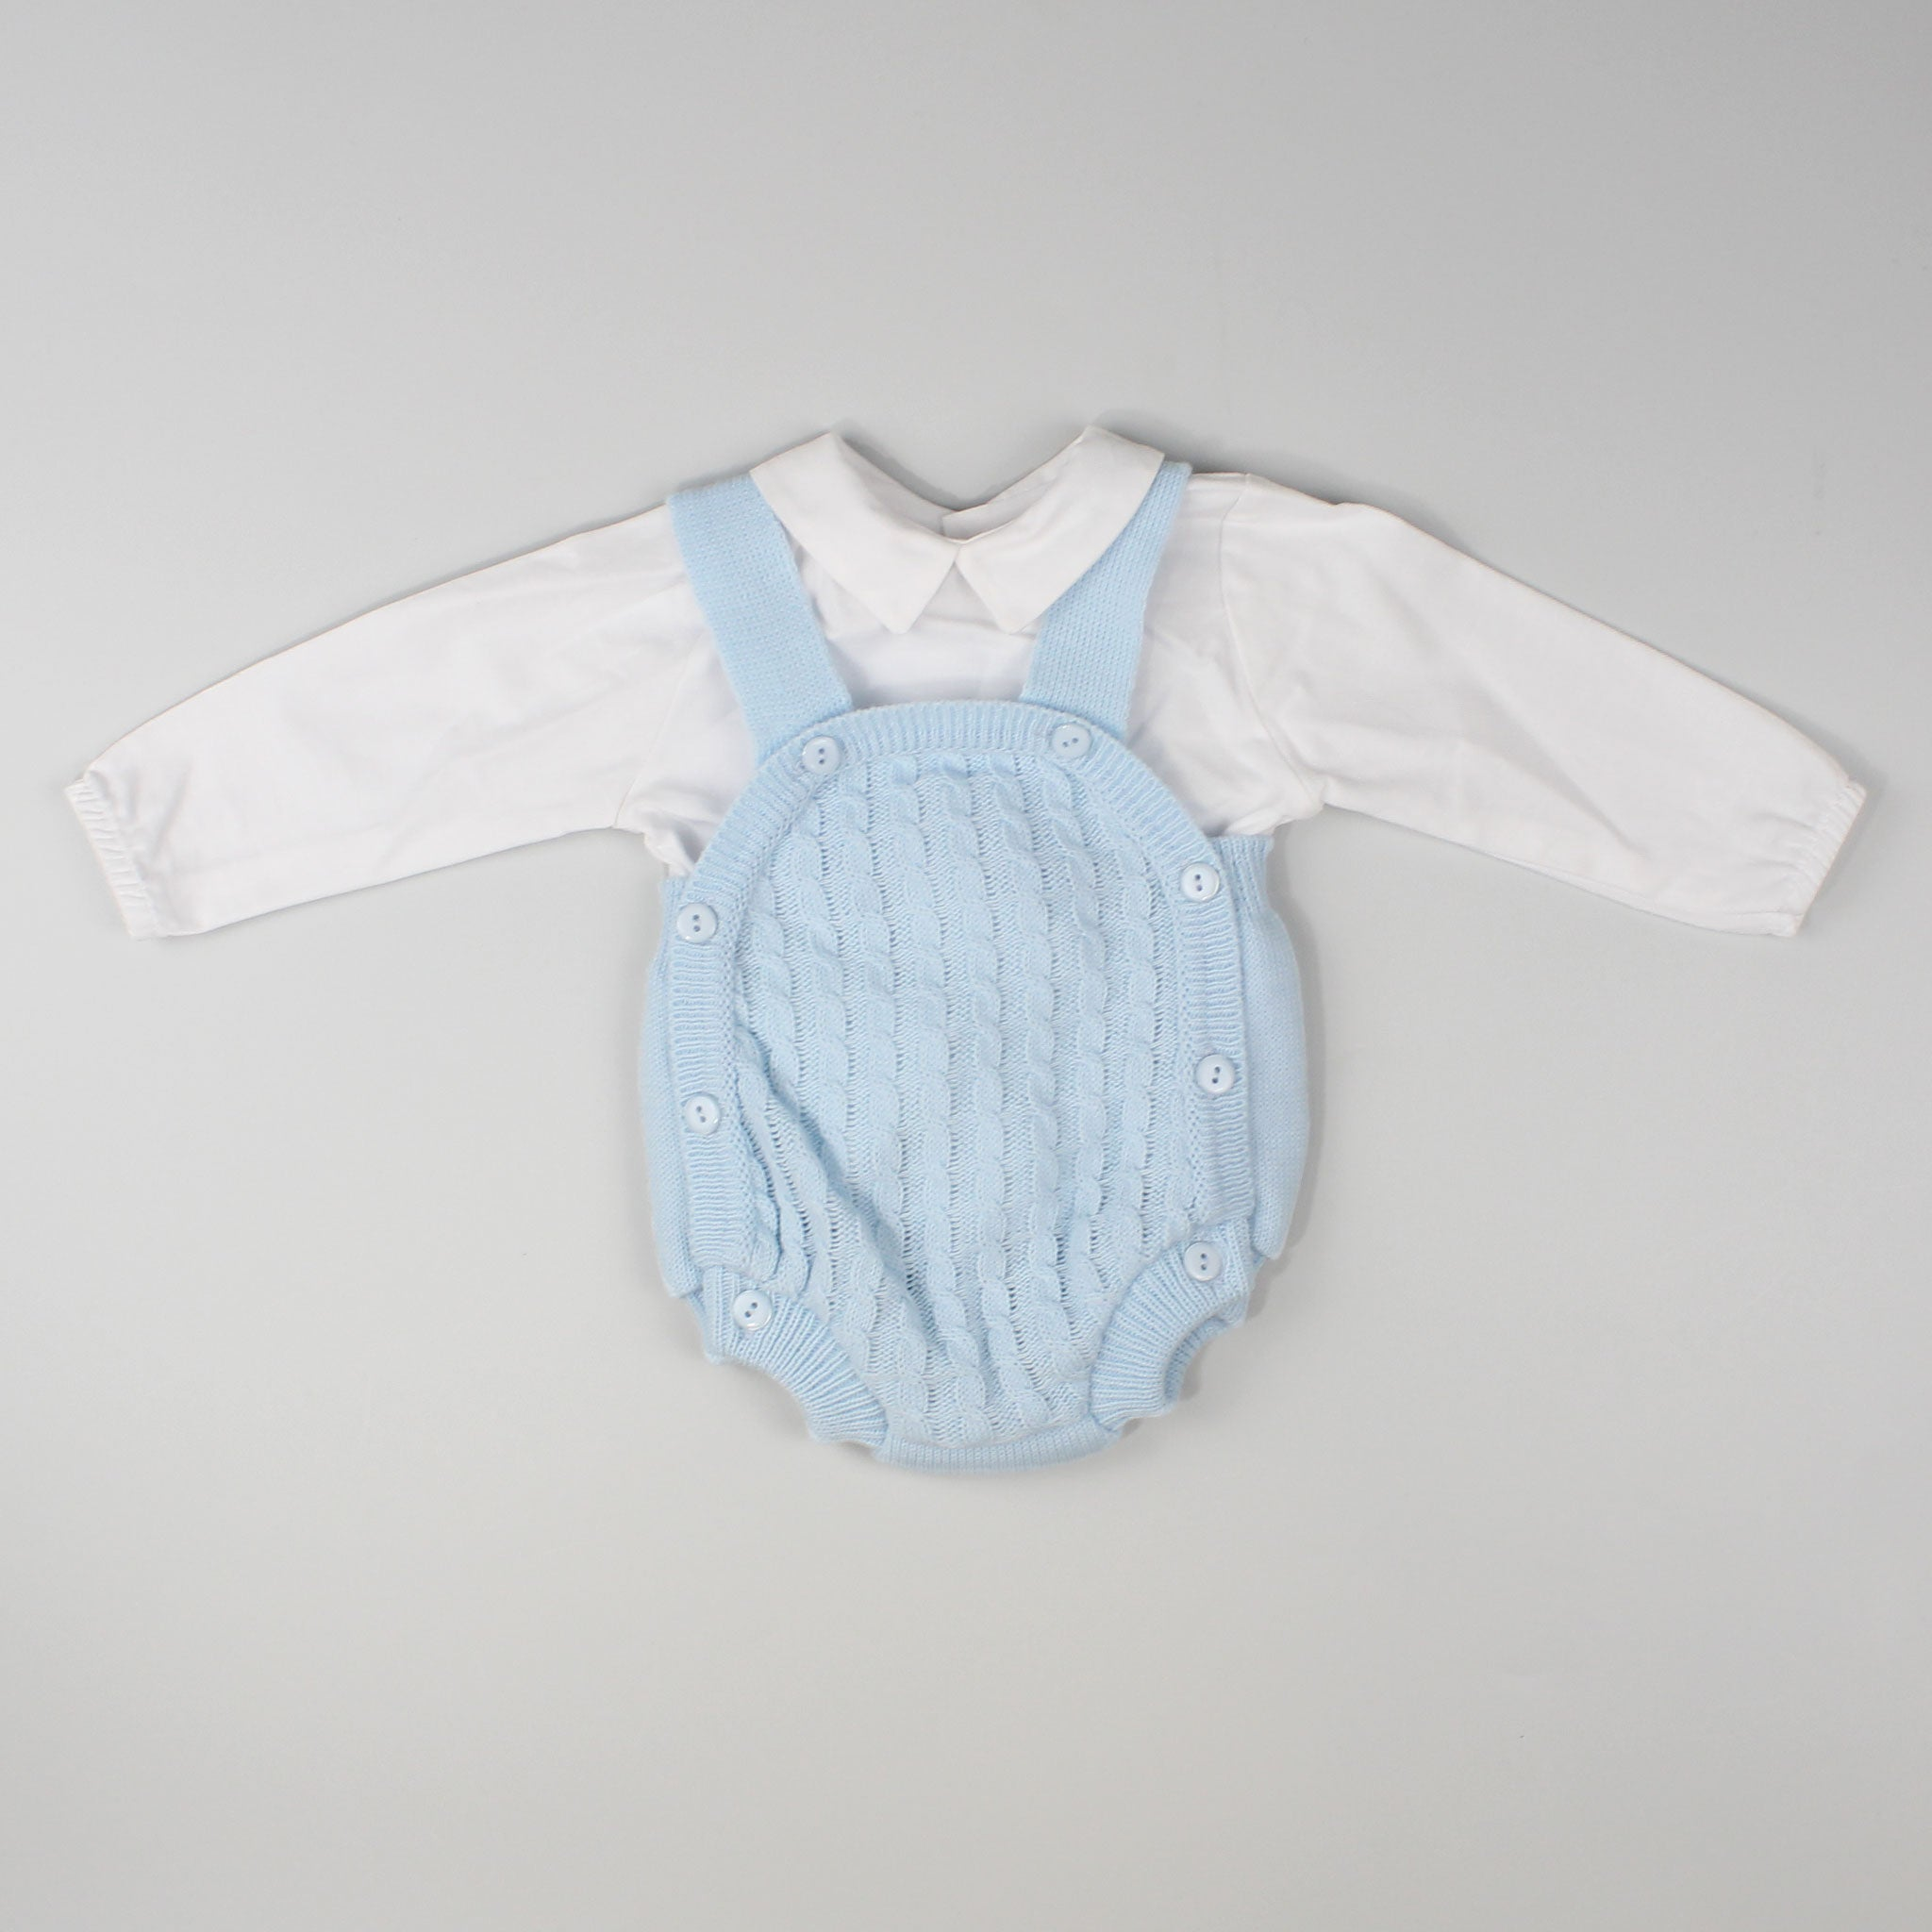 knitwear for a new baby